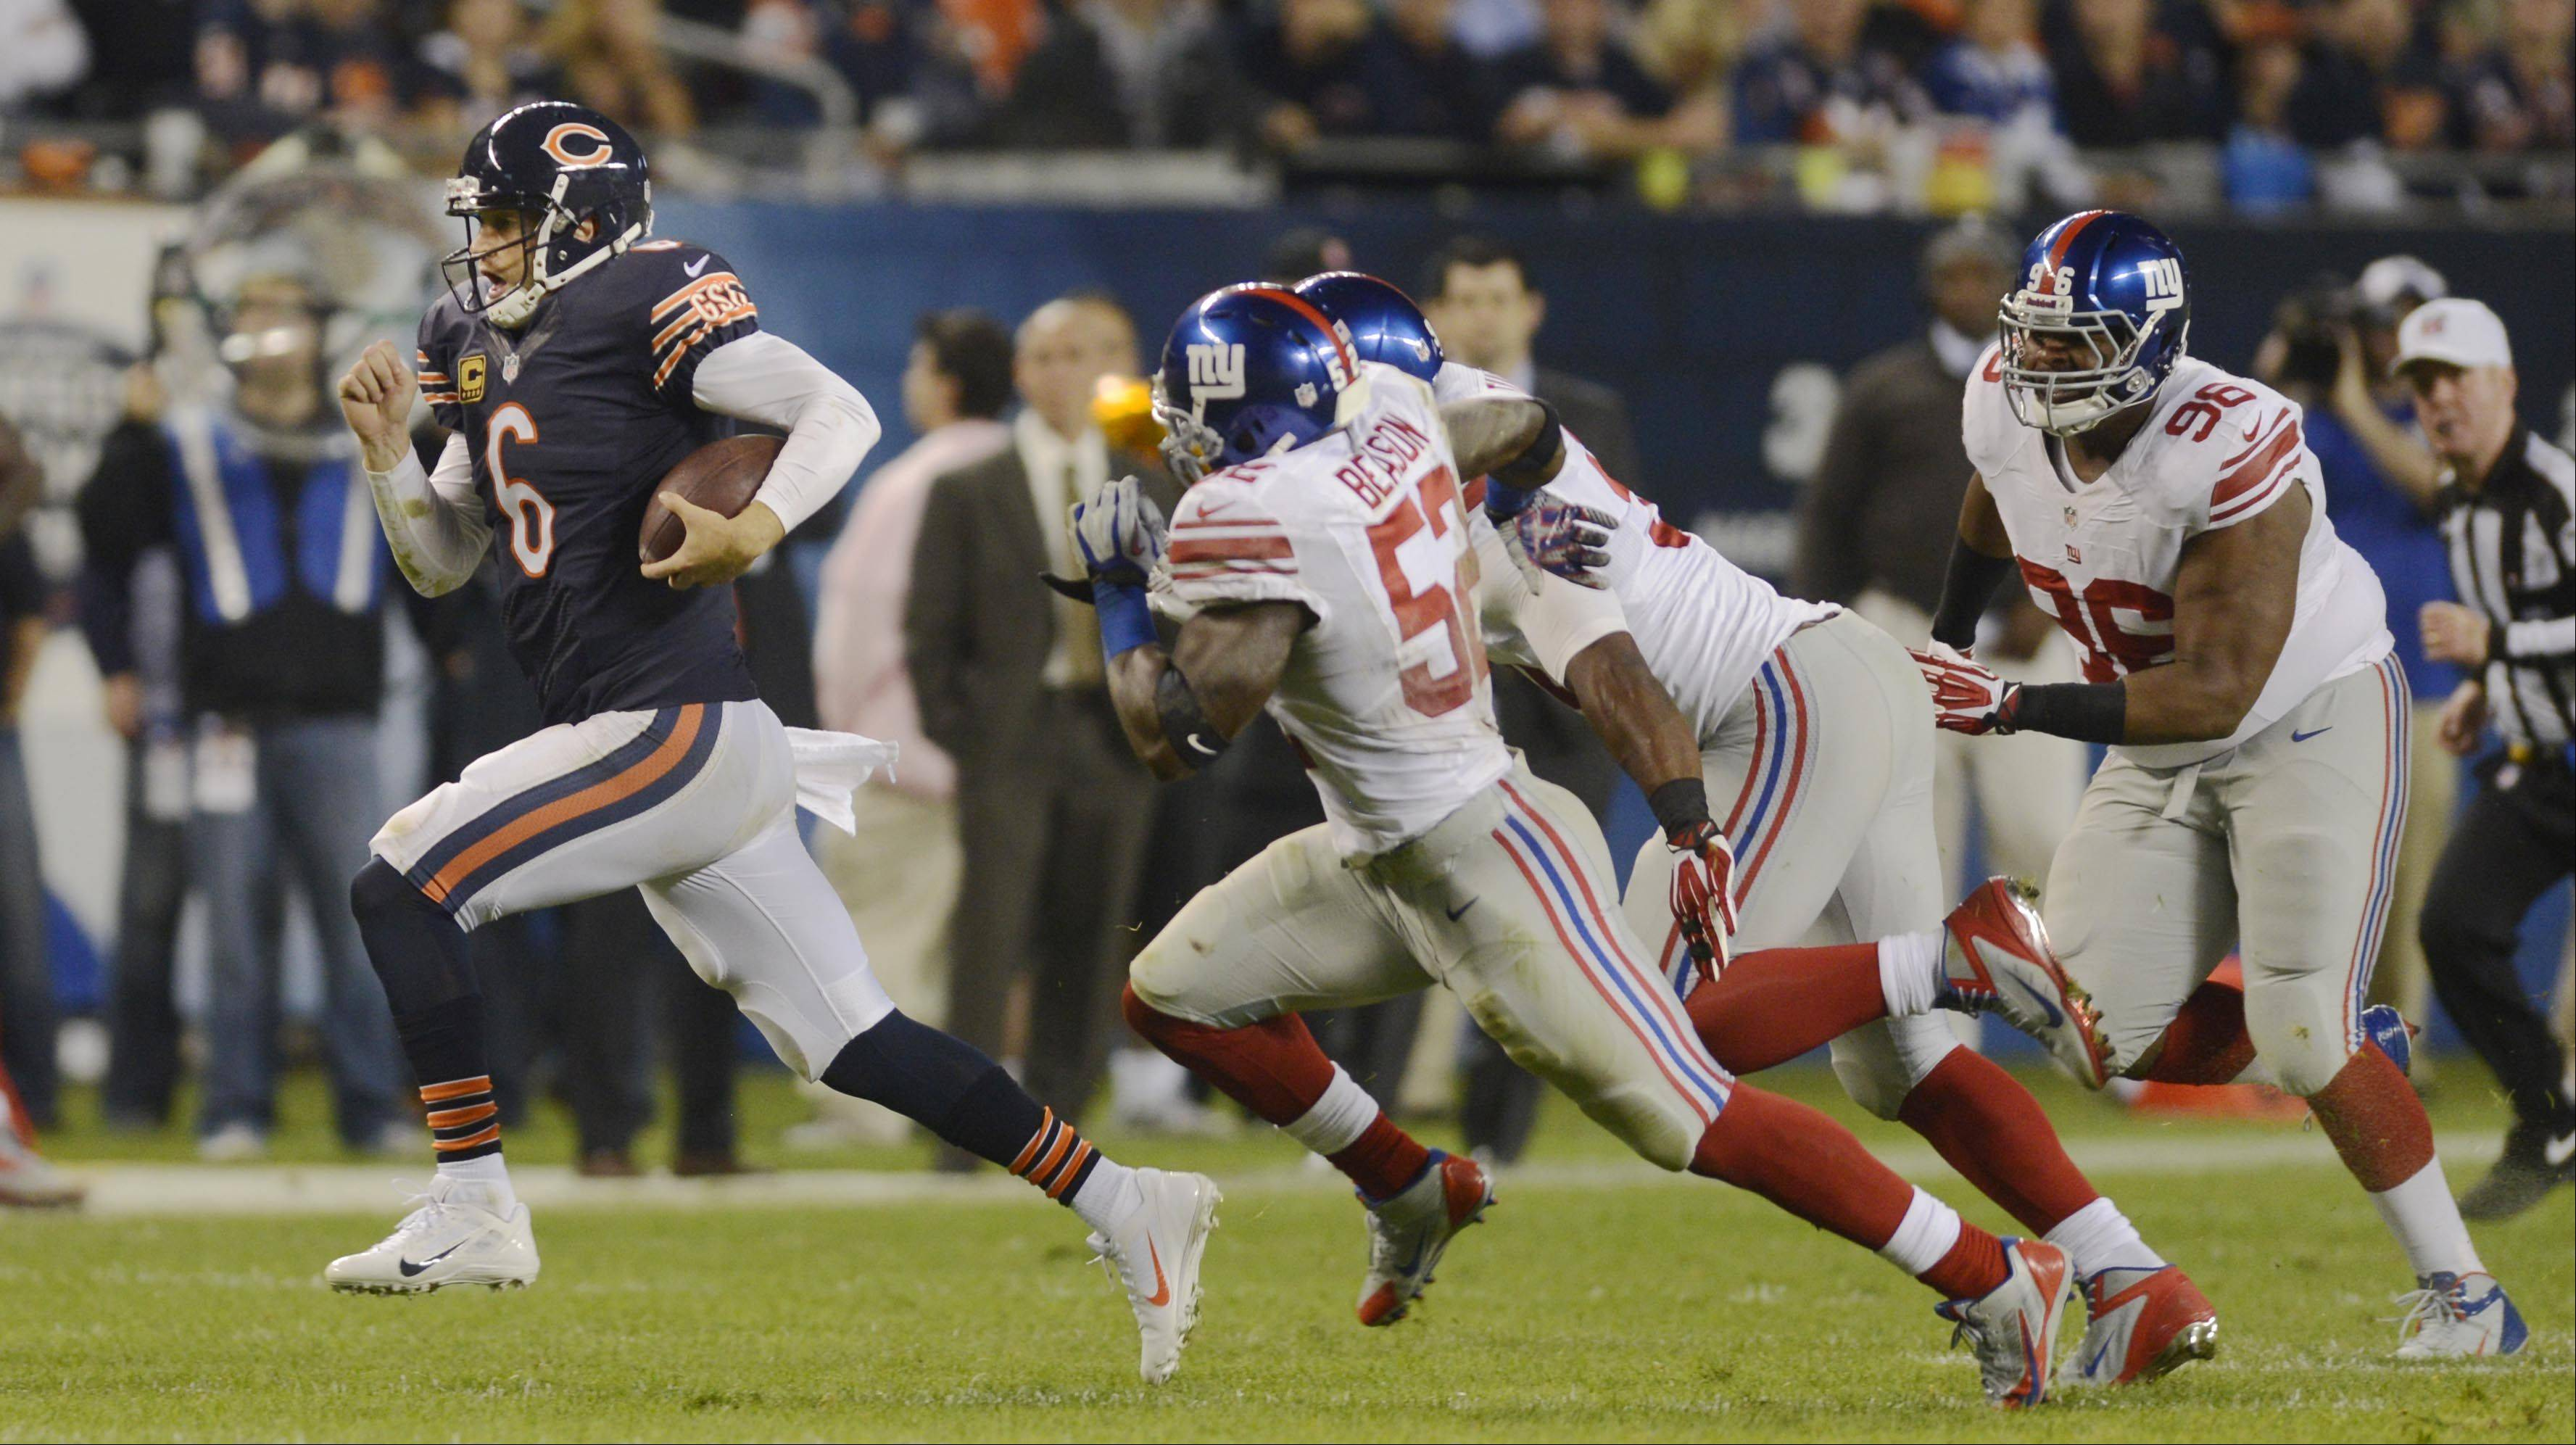 Chicago Bears quarterback Jay Cutler is chased to the sidelines.